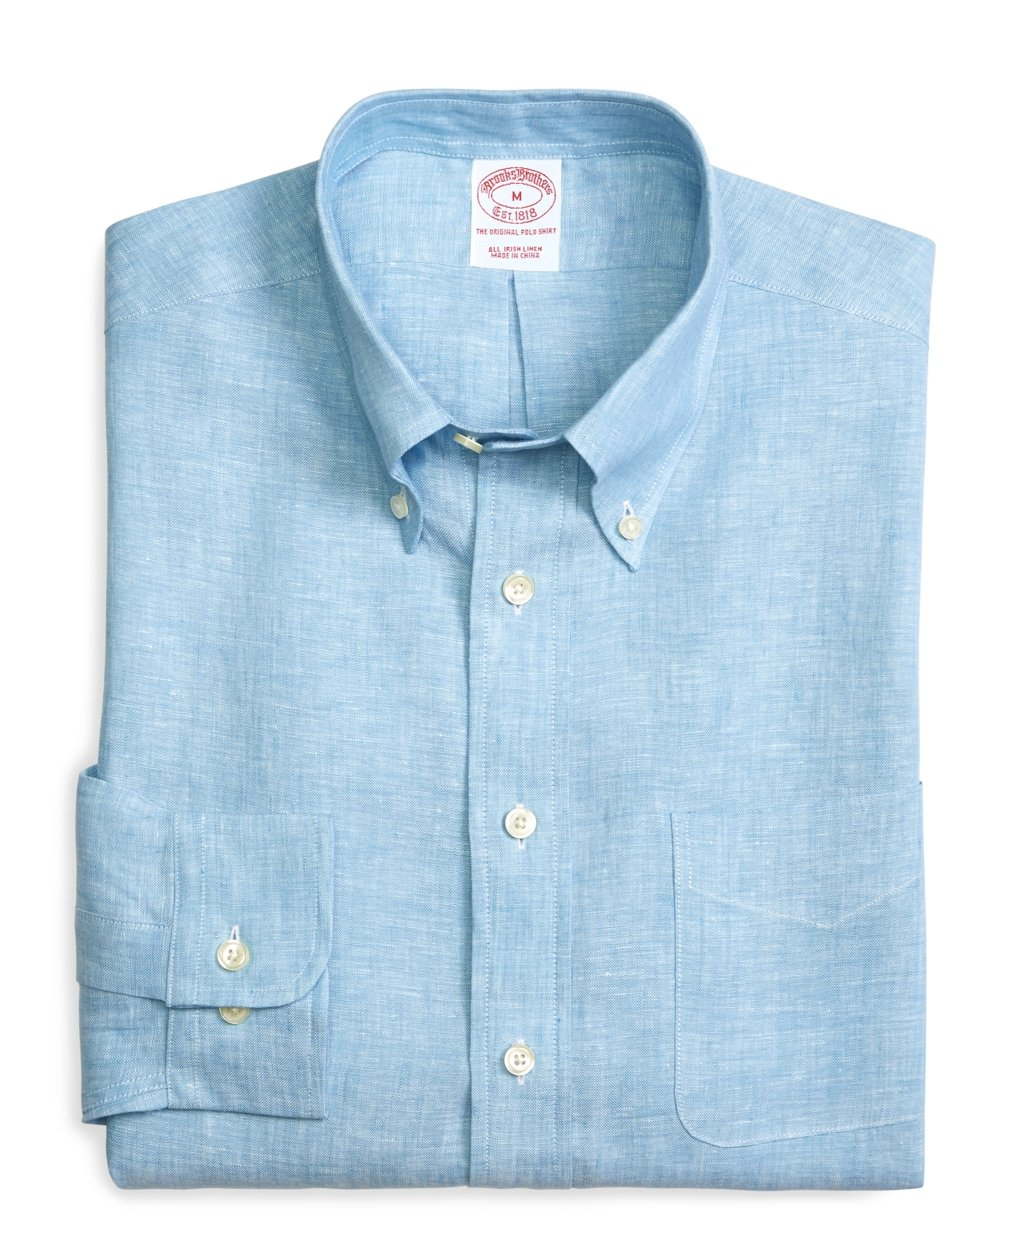 Brooks brothers slim fit solid linen sport shirt in blue Brooks brothers shirt size guide